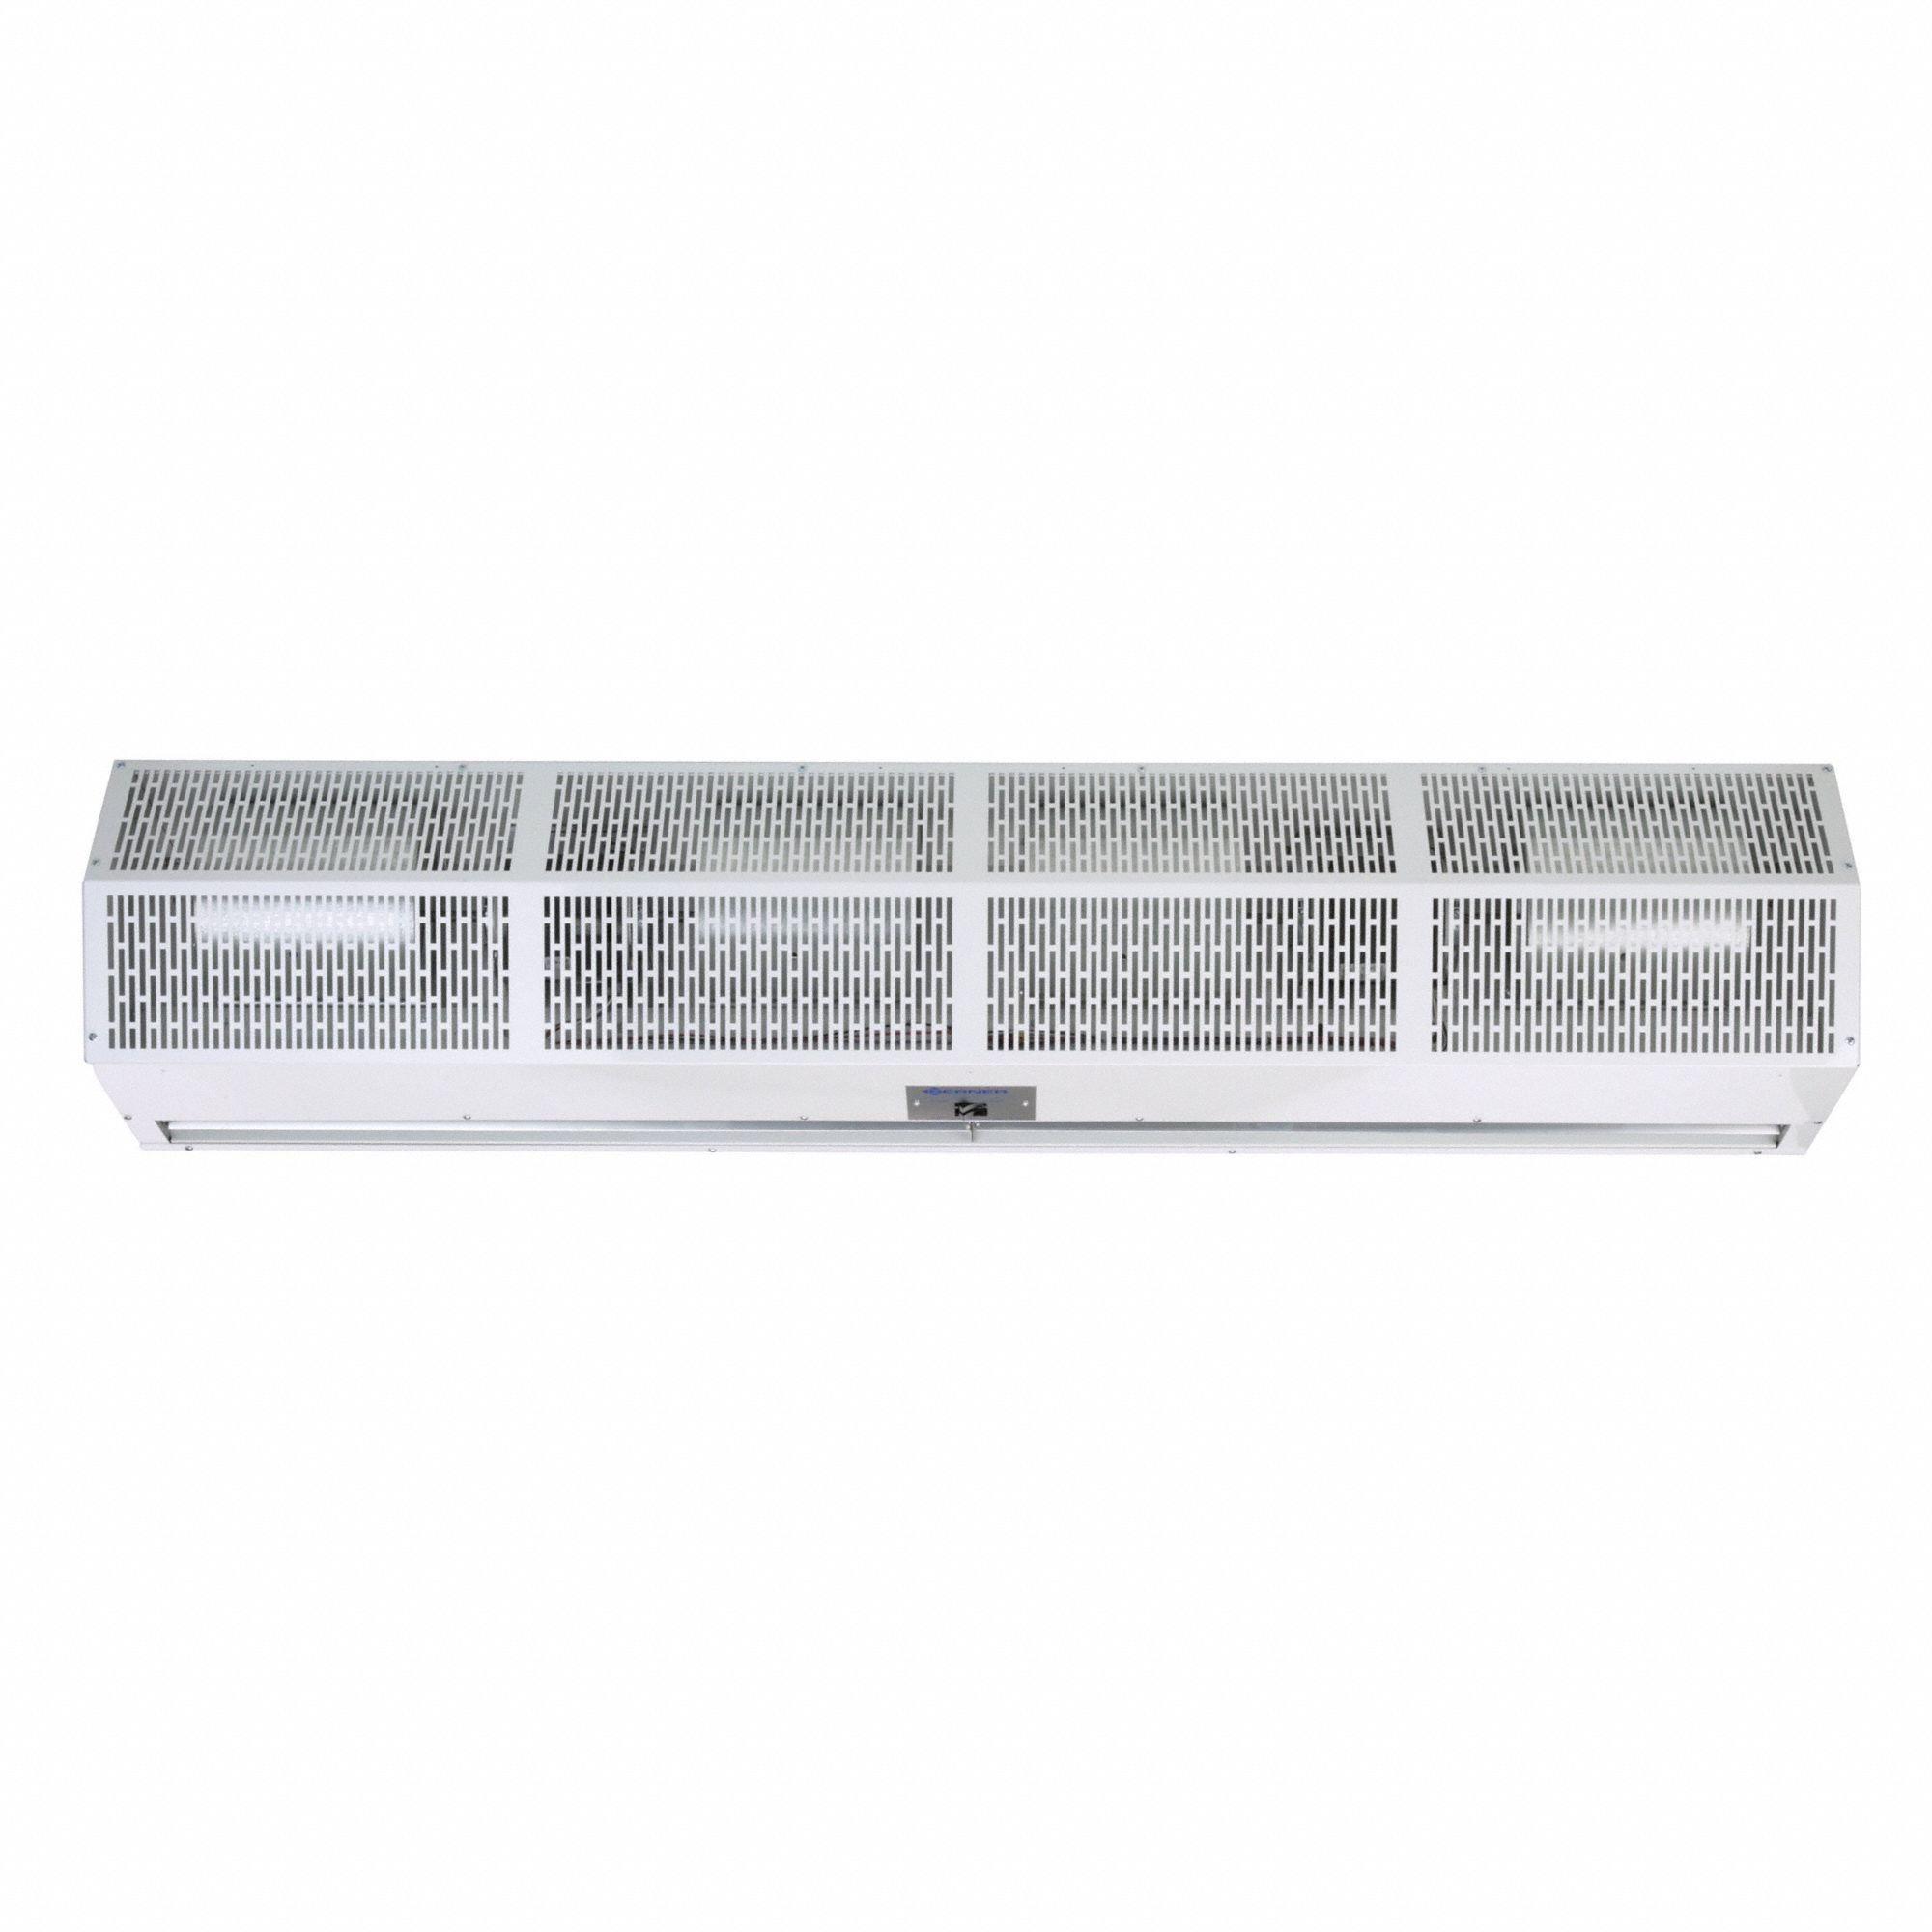 Air Curtain, 3 ft. Max. Door Width, 10 ft. Max. Mount Ht., 67 dBA @ 10 Feet, 3500 fpm